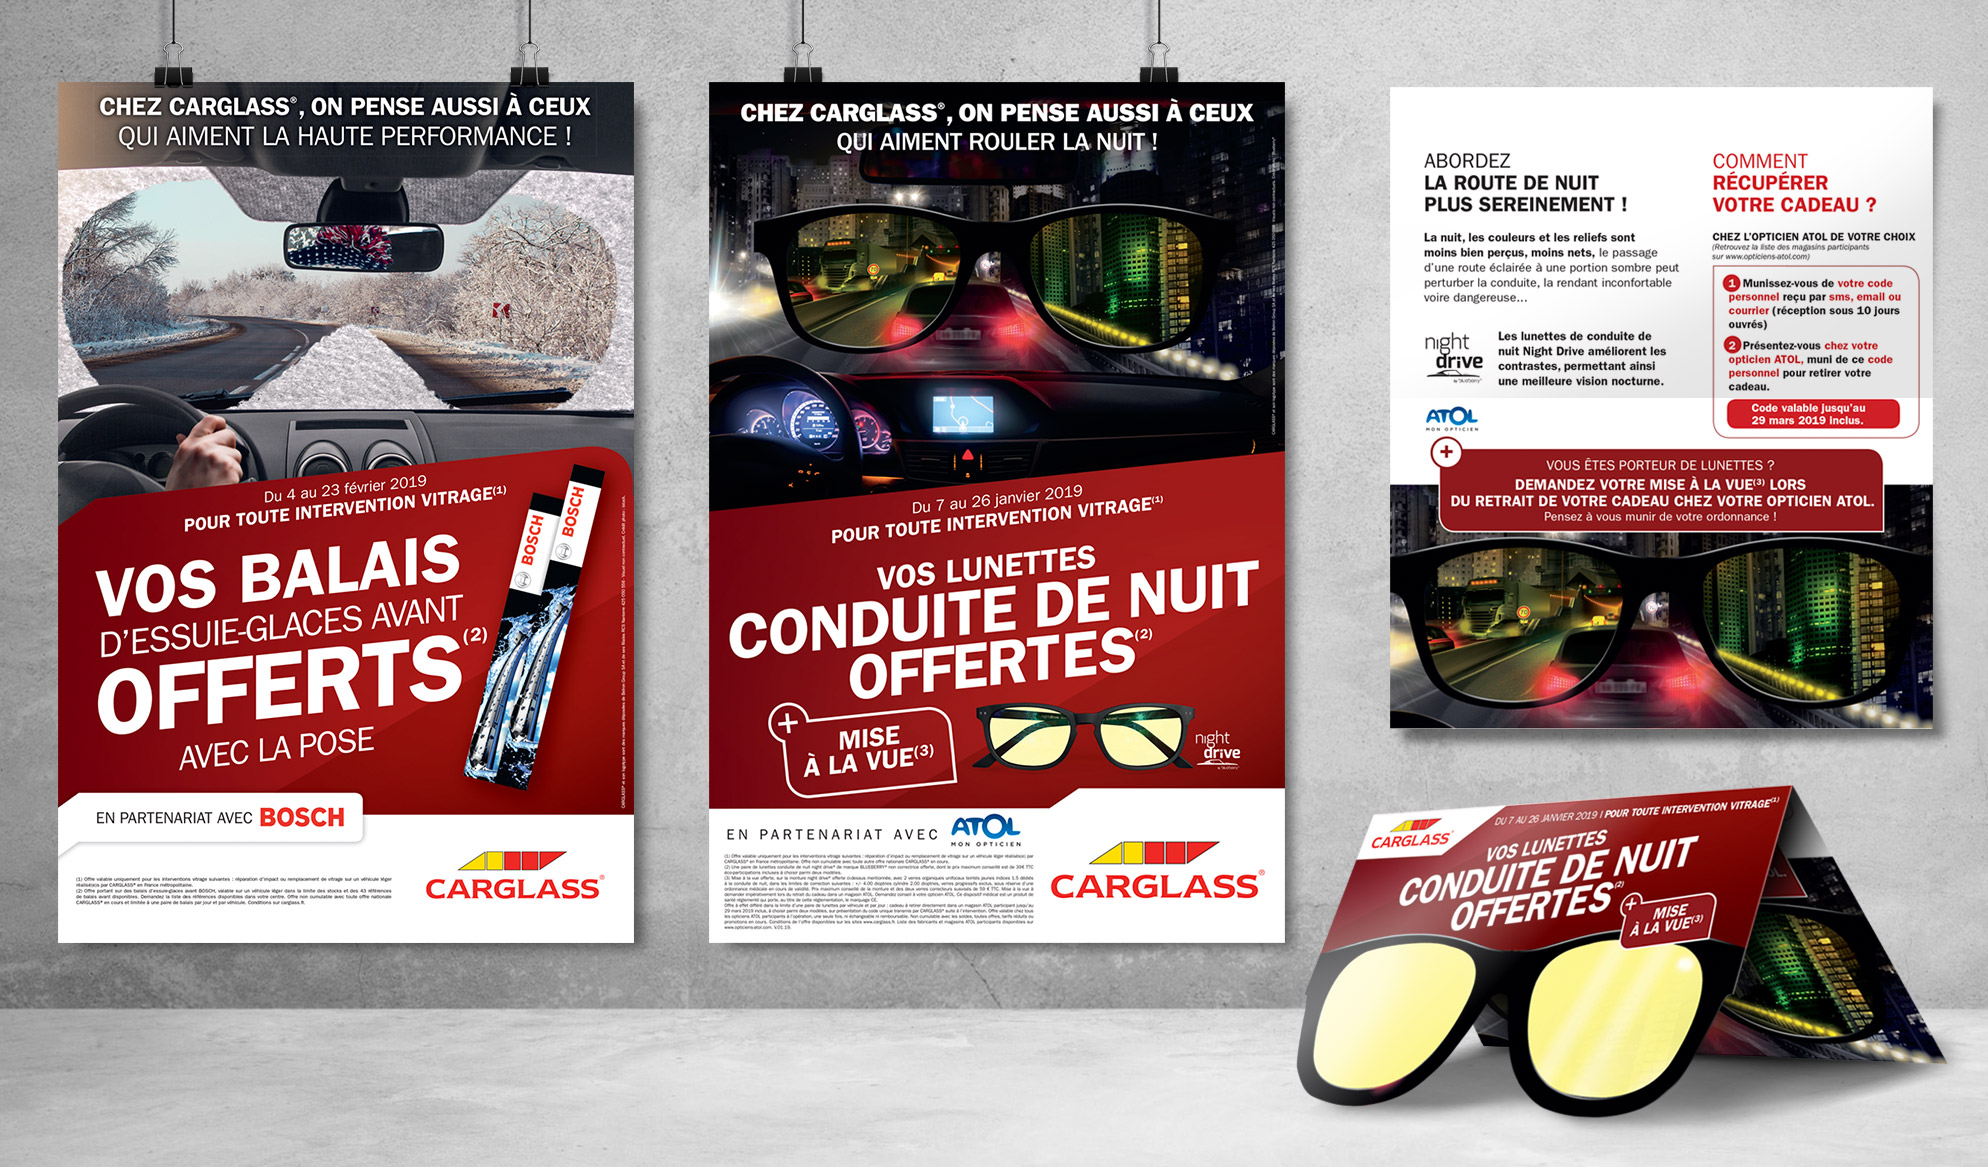 Image campagne affichage Carglass